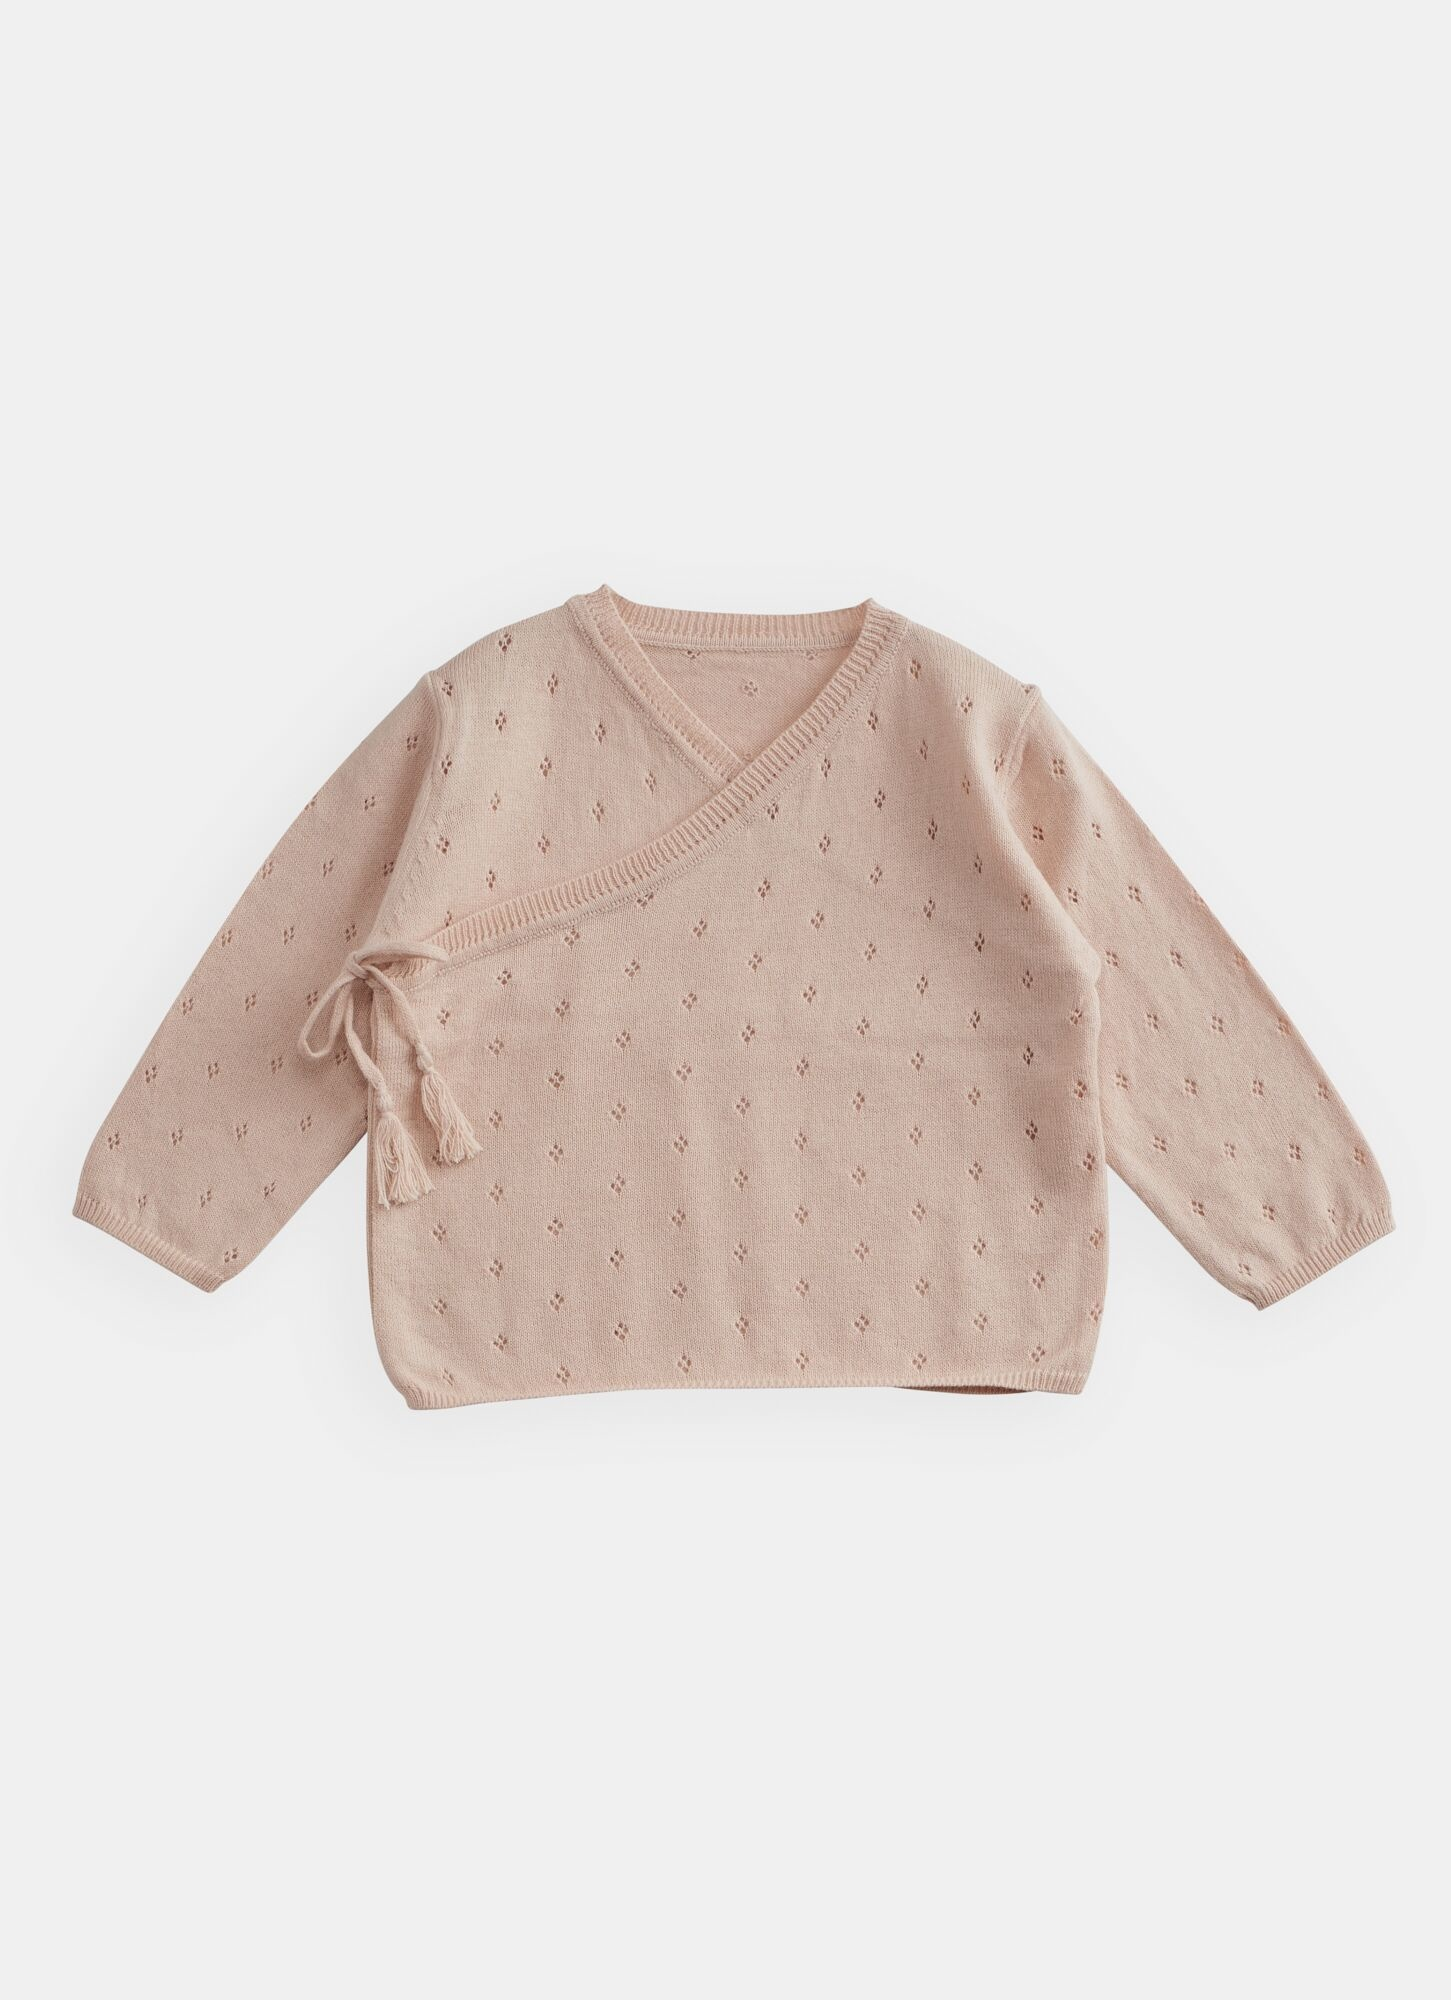 BELLE ENFANT Pointelle Wrap Top